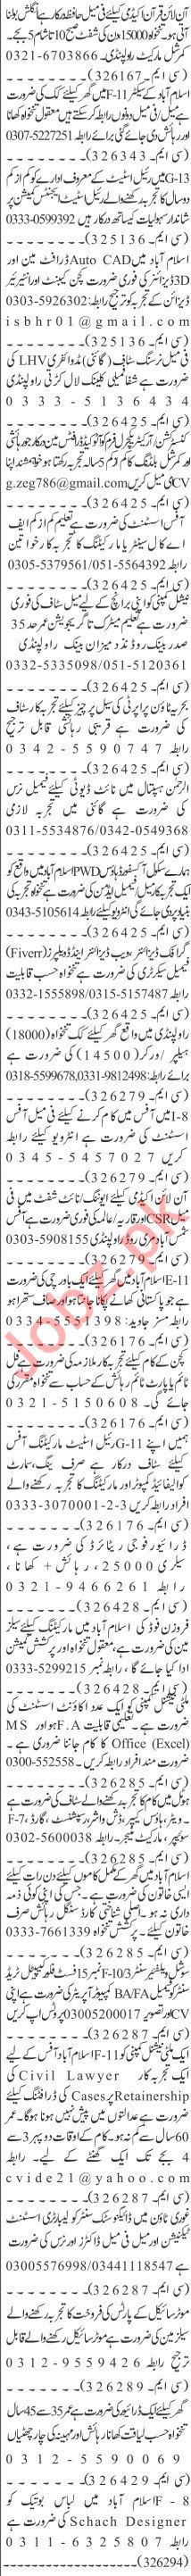 Jang Sunday Classified Ads 24 Jan 2021 for Administration